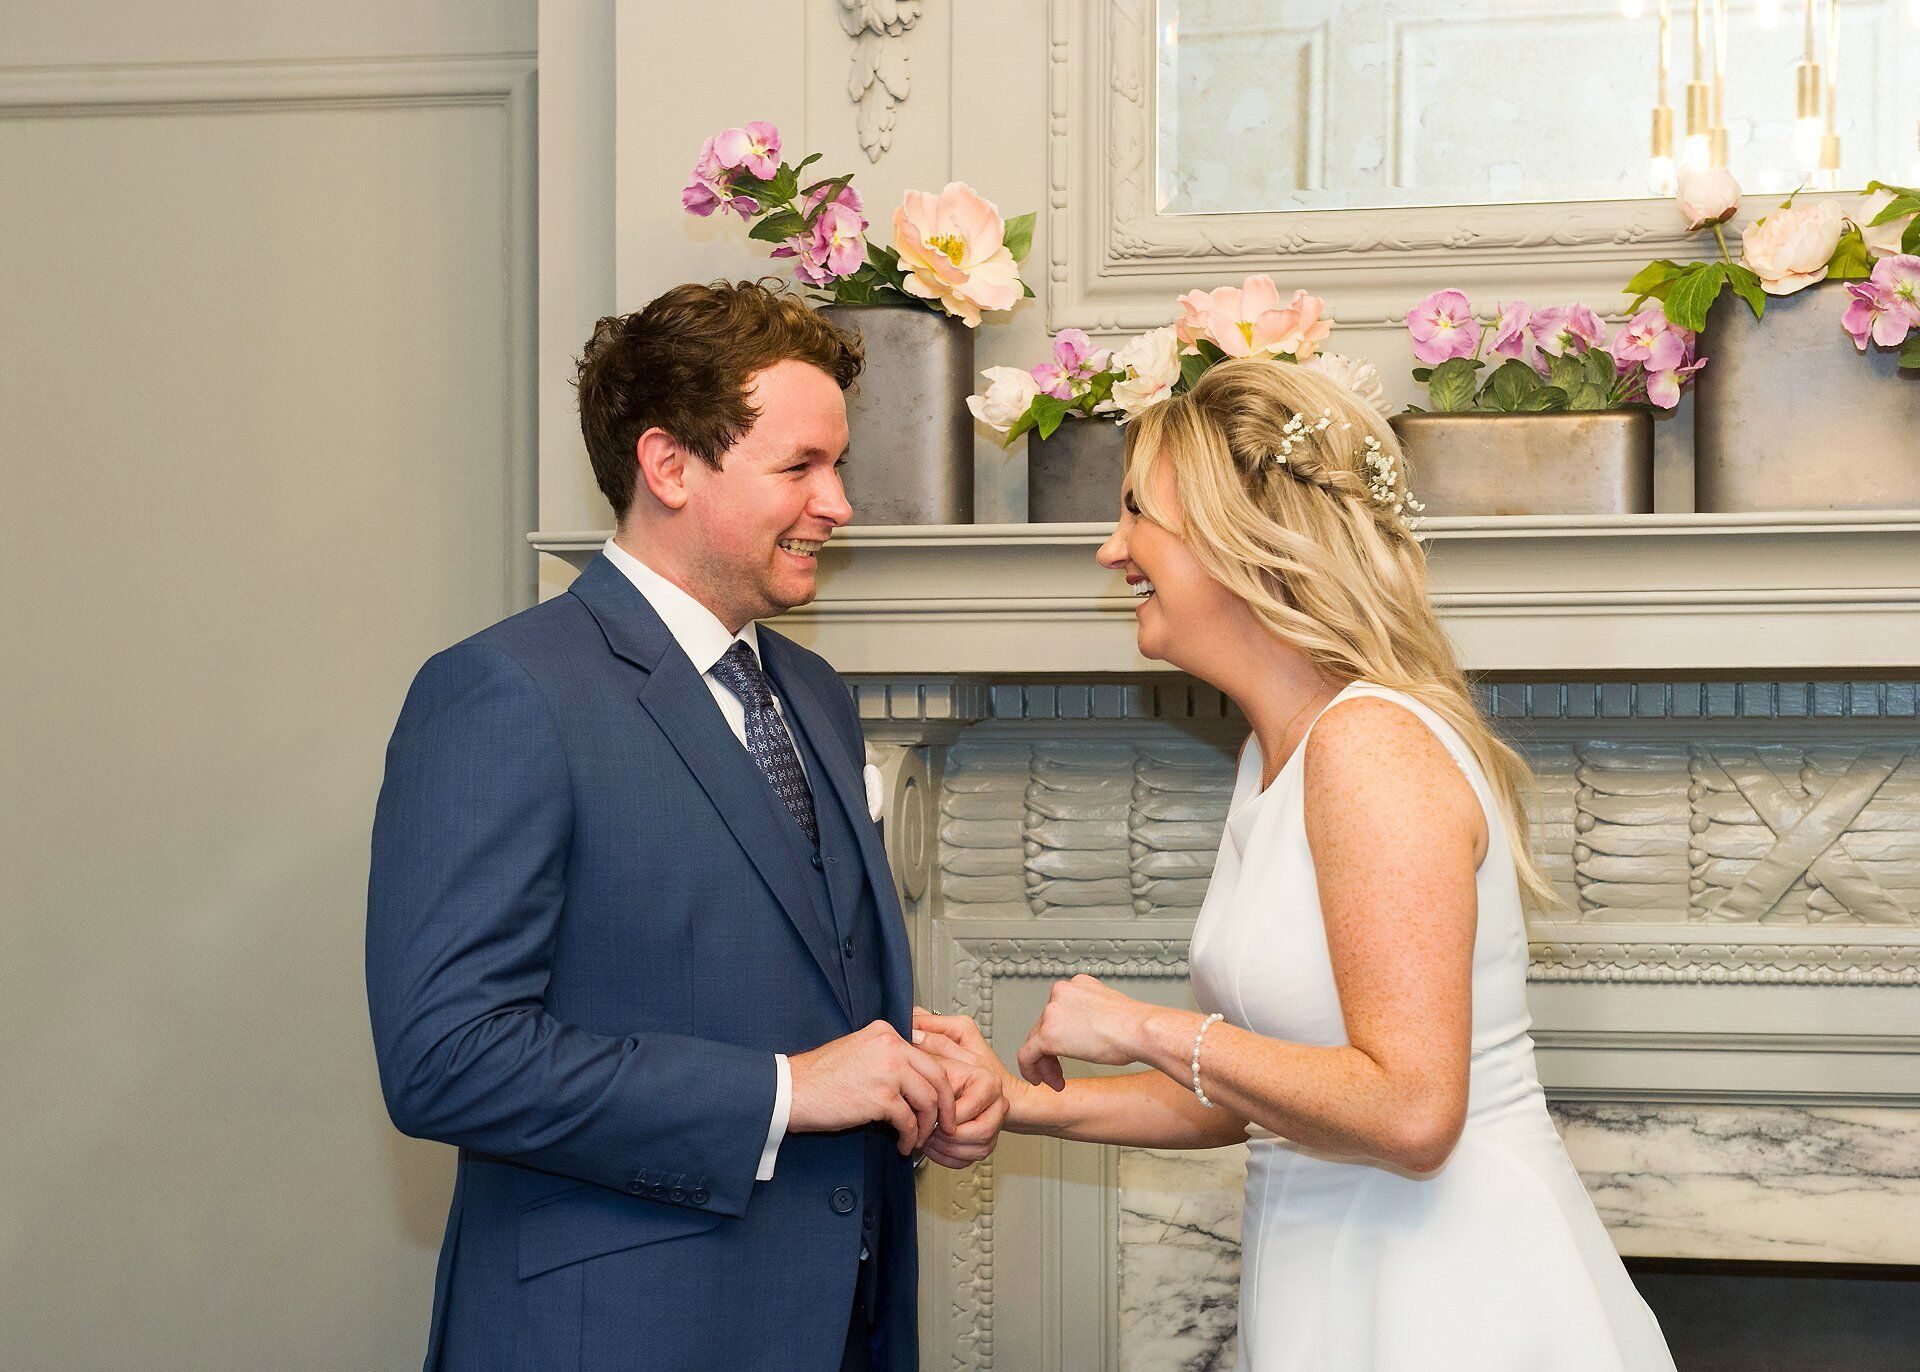 bride and groom smiling during ring exchange at civil marriage westminster register office